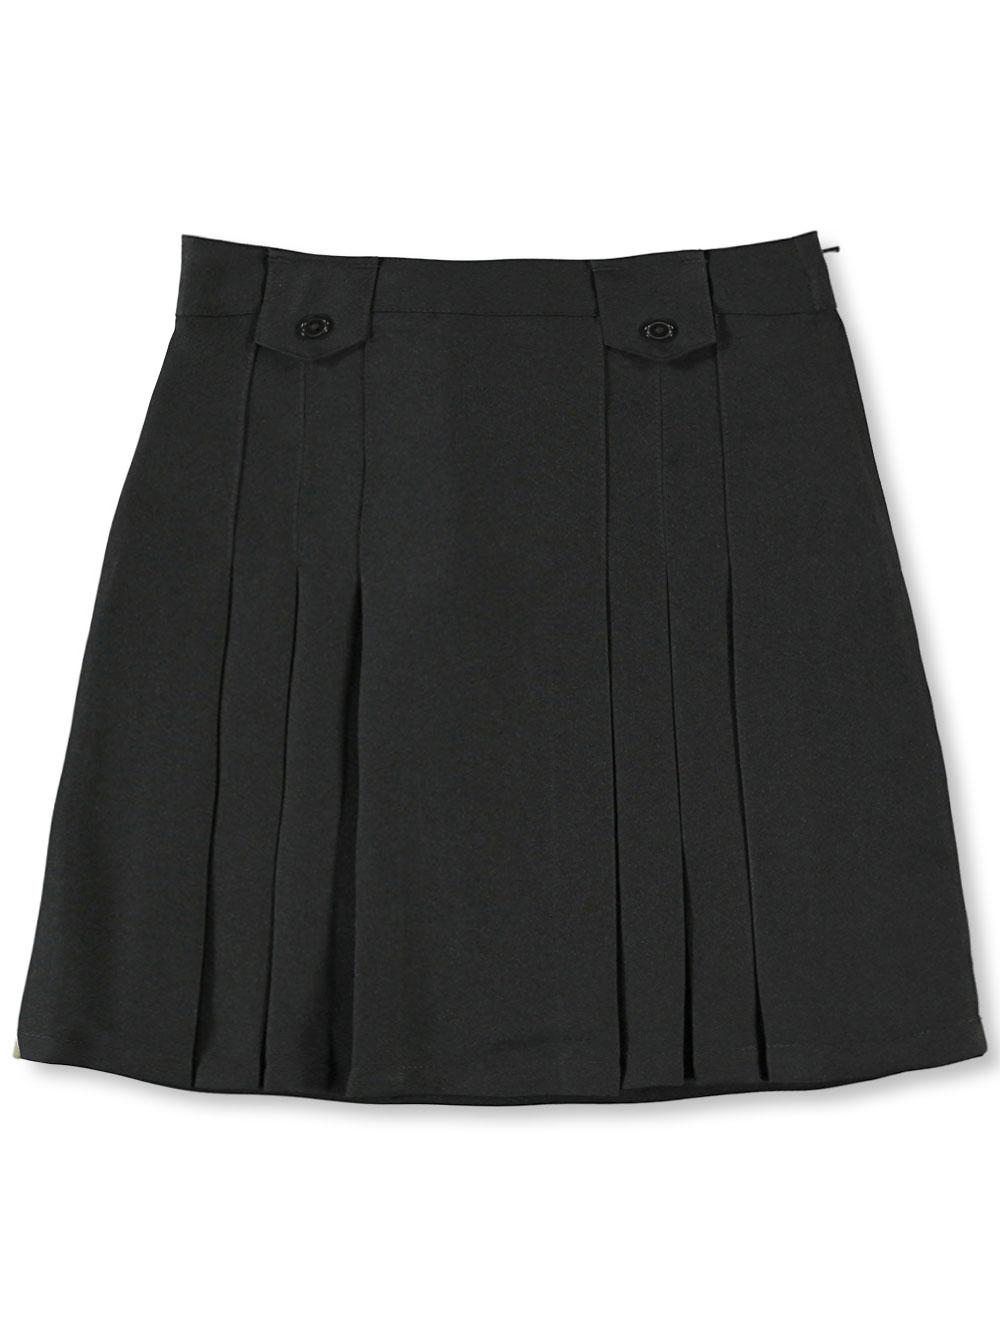 Size 8-10 Skirts for Girls